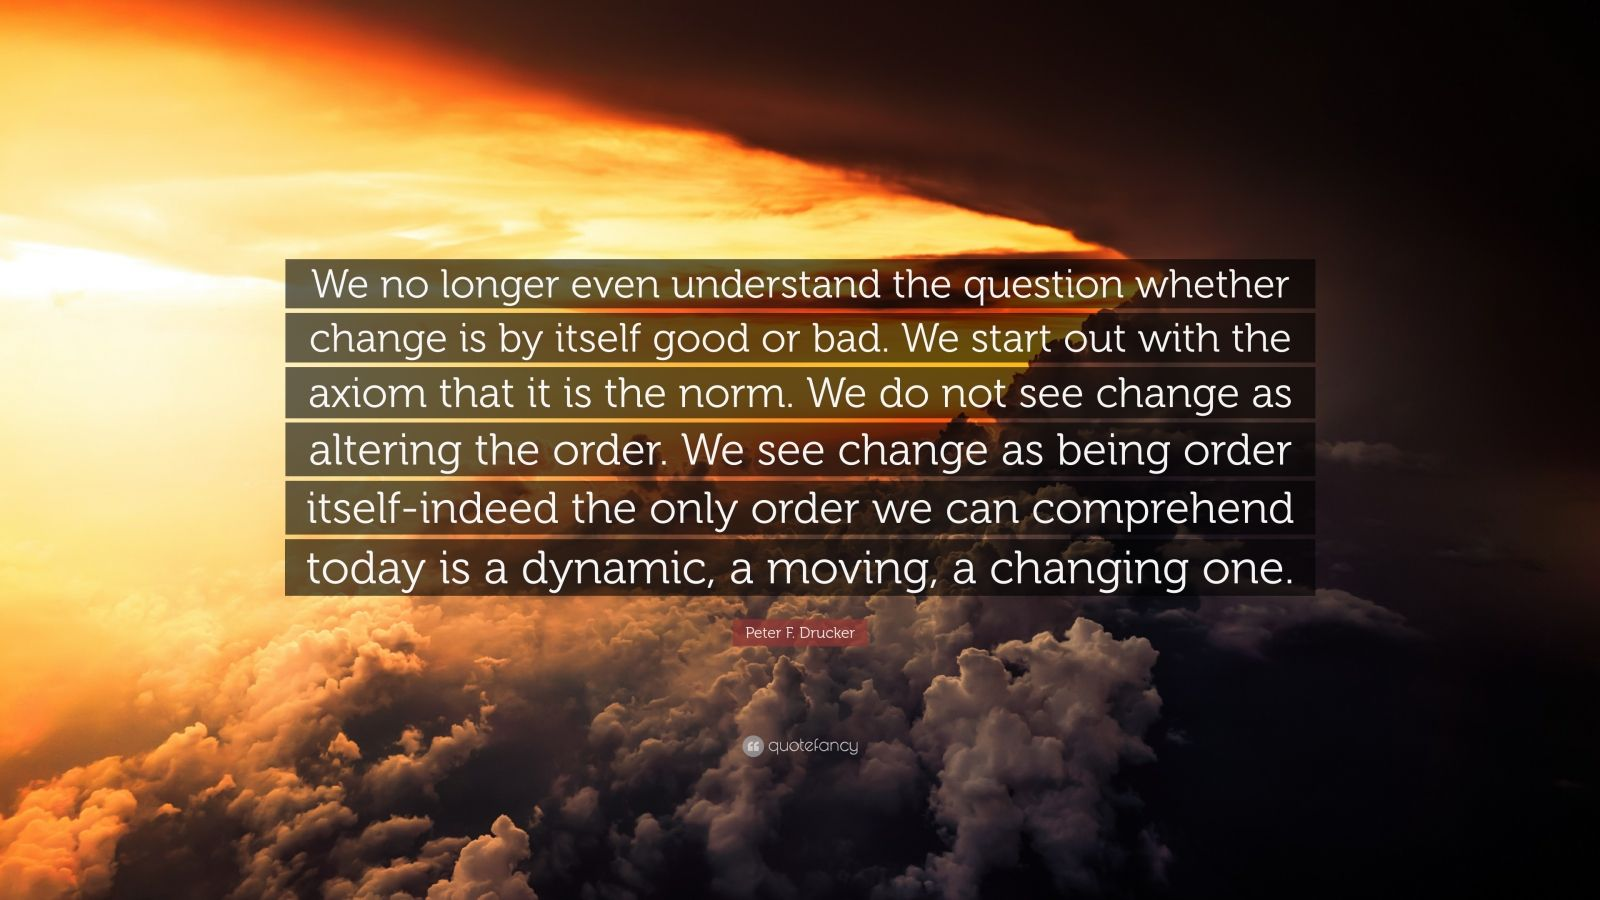 "Peter F. Drucker Quote: ""We no longer even understand the question whether change is by itself good or bad. We start out with the axiom that it is the norm. We do not see change as altering the order. We see change as being order itself-indeed the only order we can comprehend today is a dynamic, a moving, a changing one."""